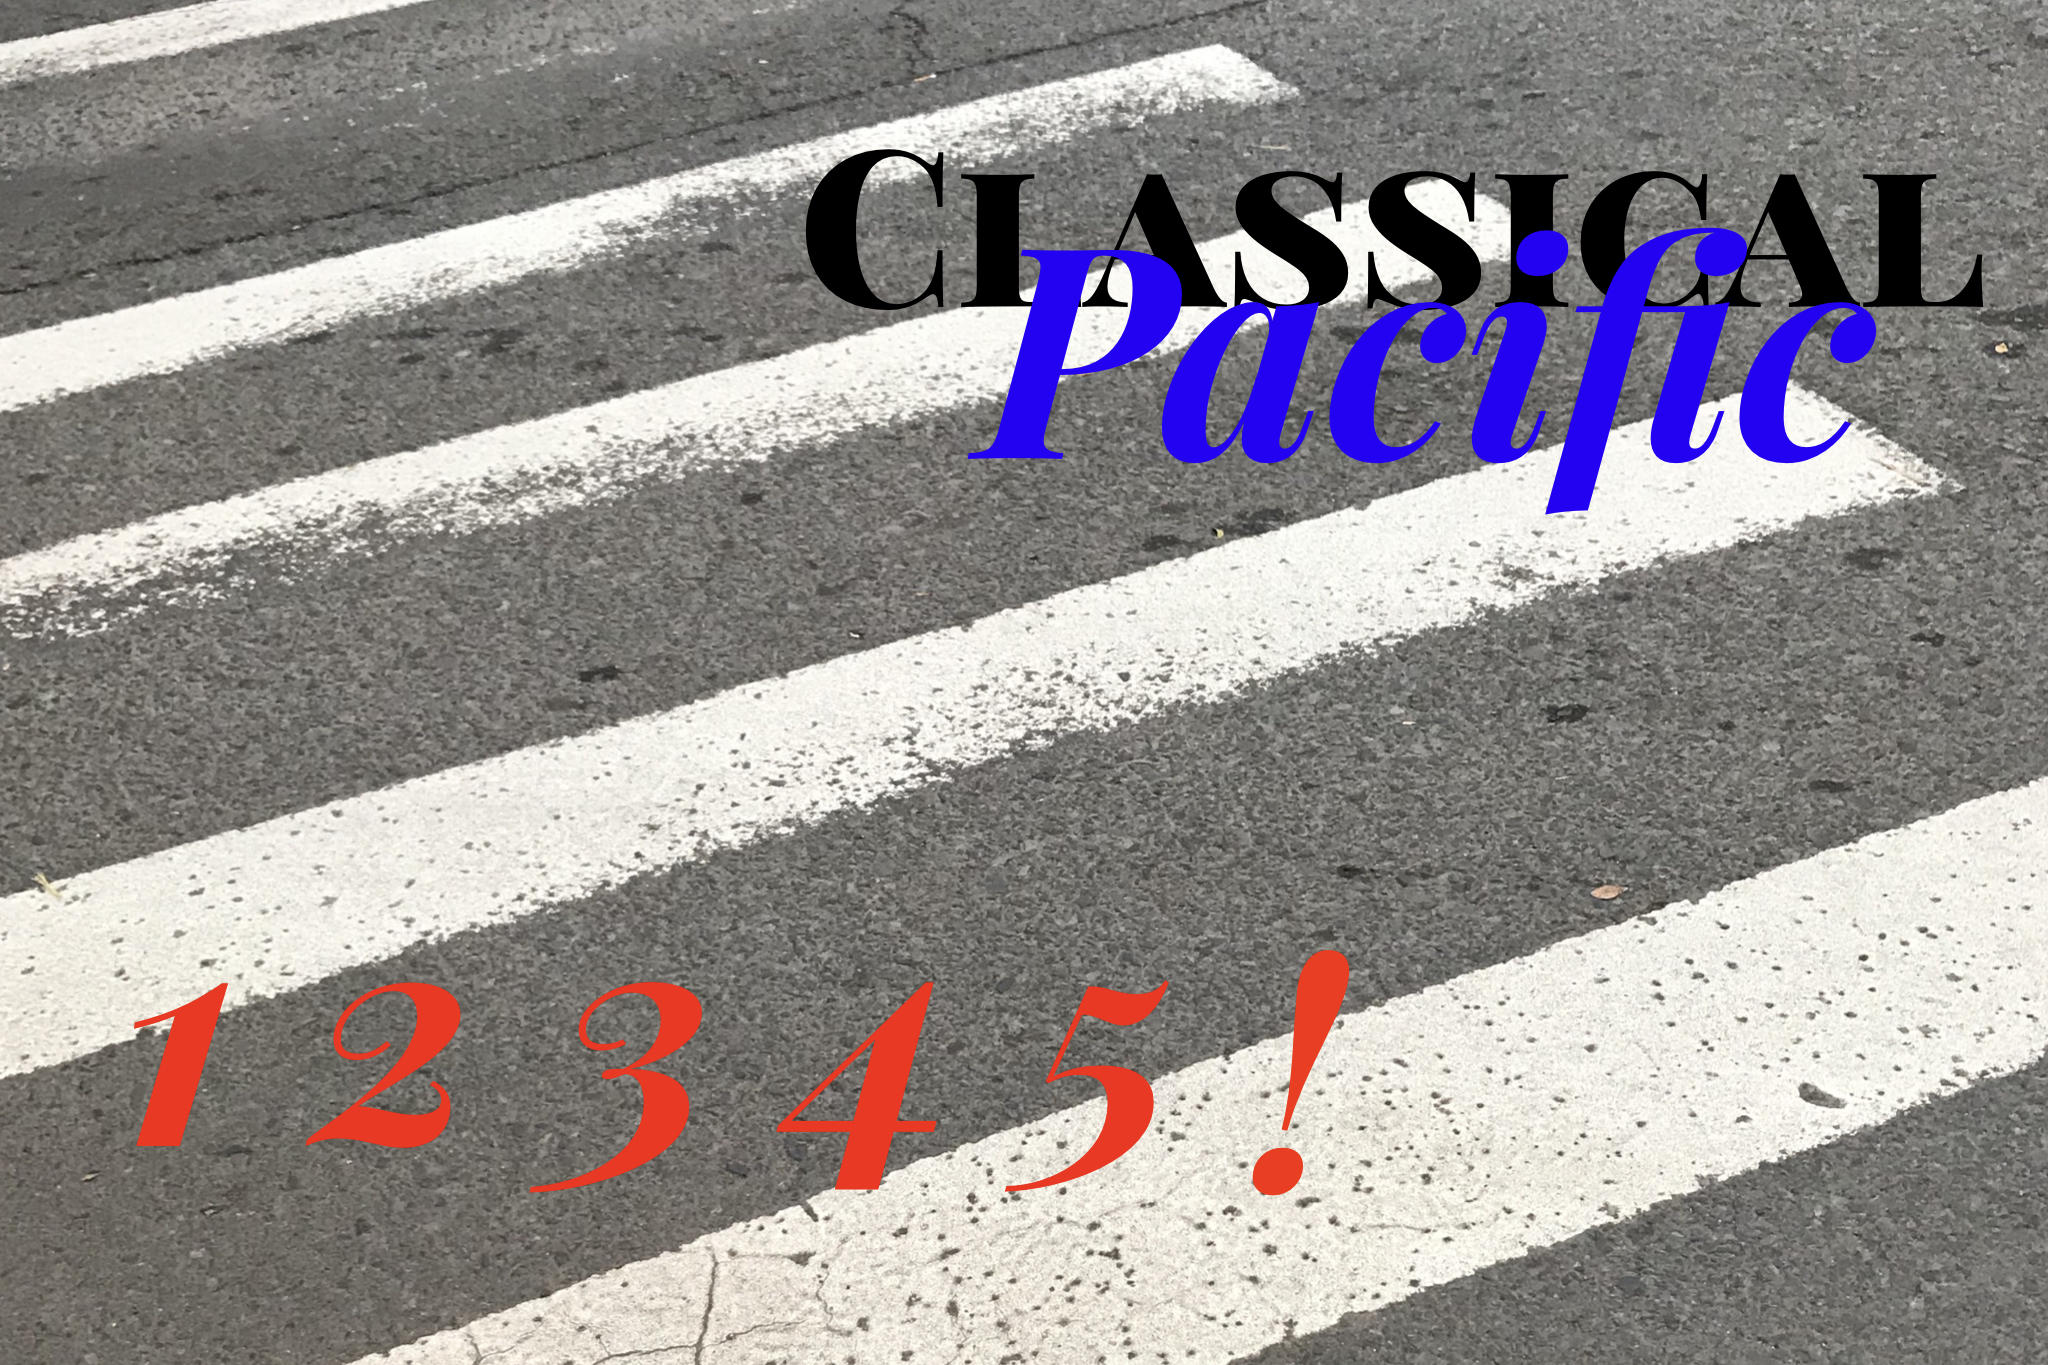 Classical Pacific, Wednesday, February 21, 2018: 1, 2, 3 ...